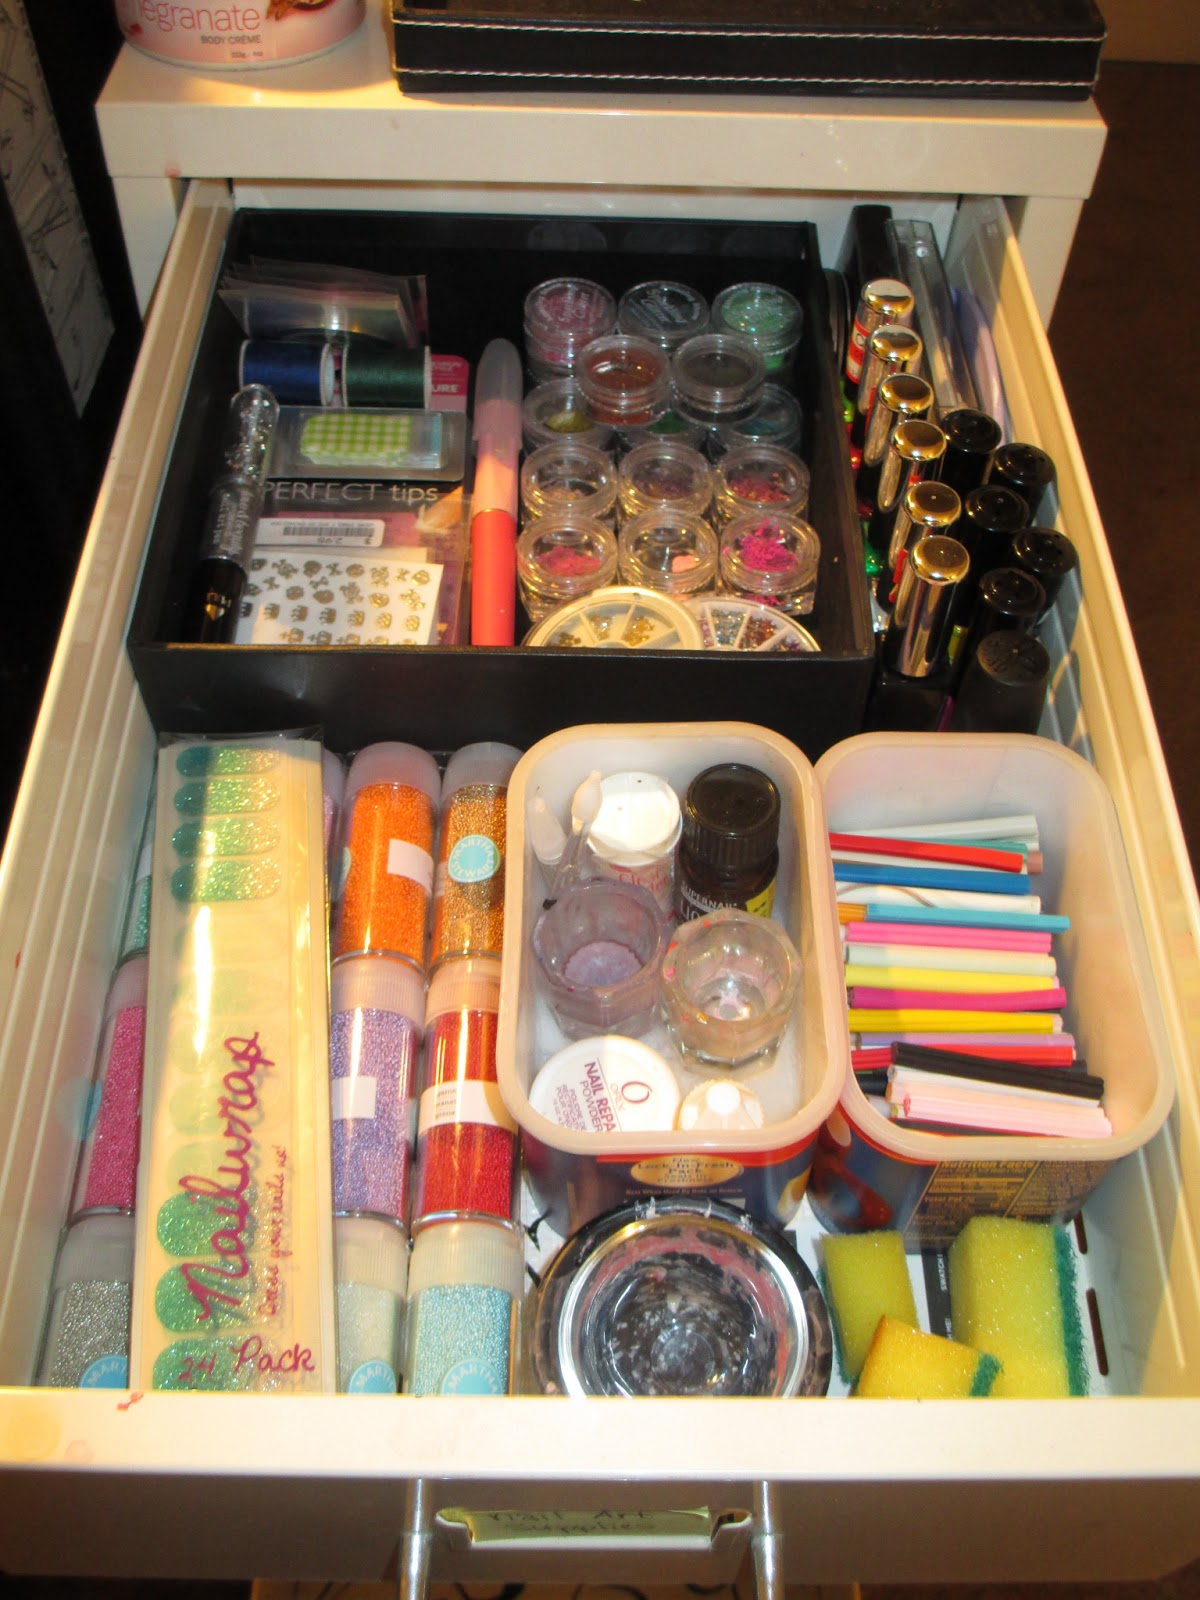 Fairly Charming: Spring Cleaning: Time To Re-Organize!